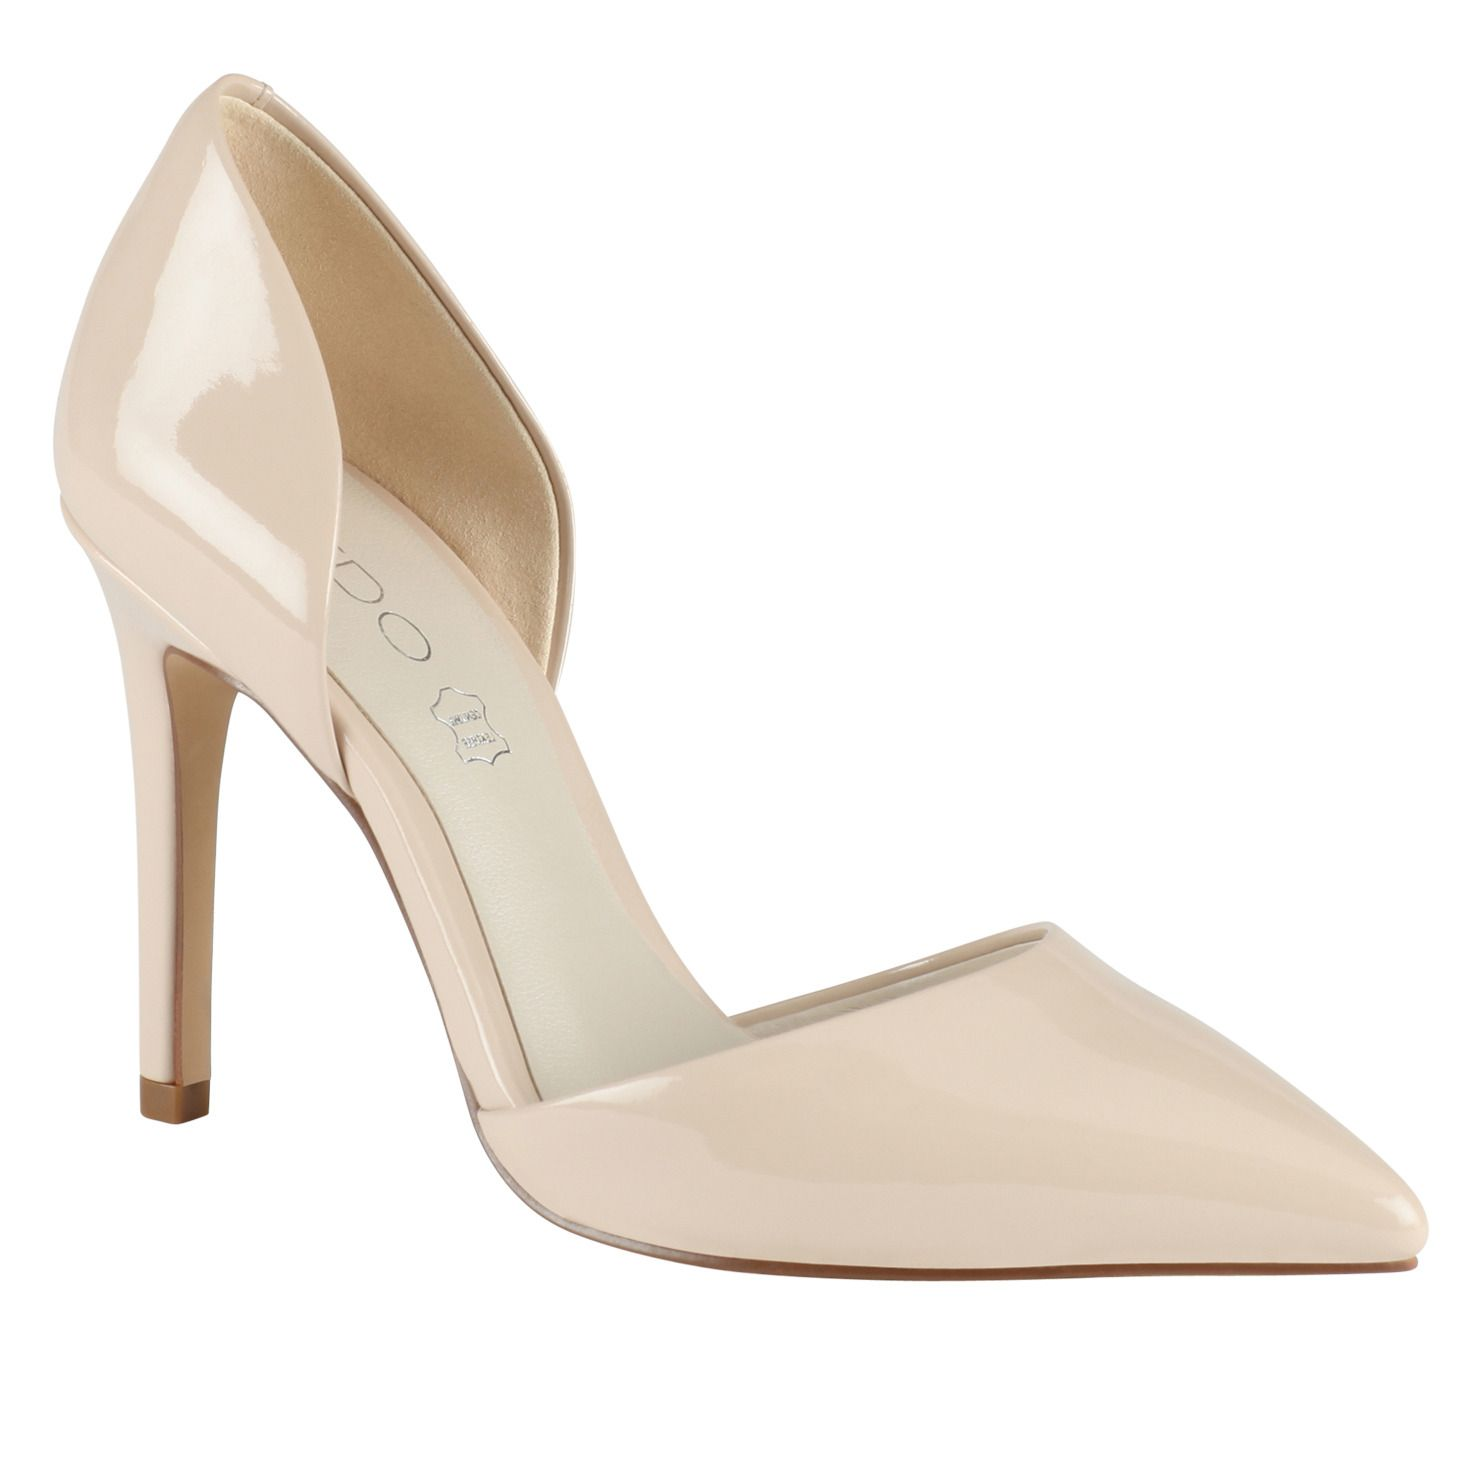 high heels shoes for sale at ALDO Shoes